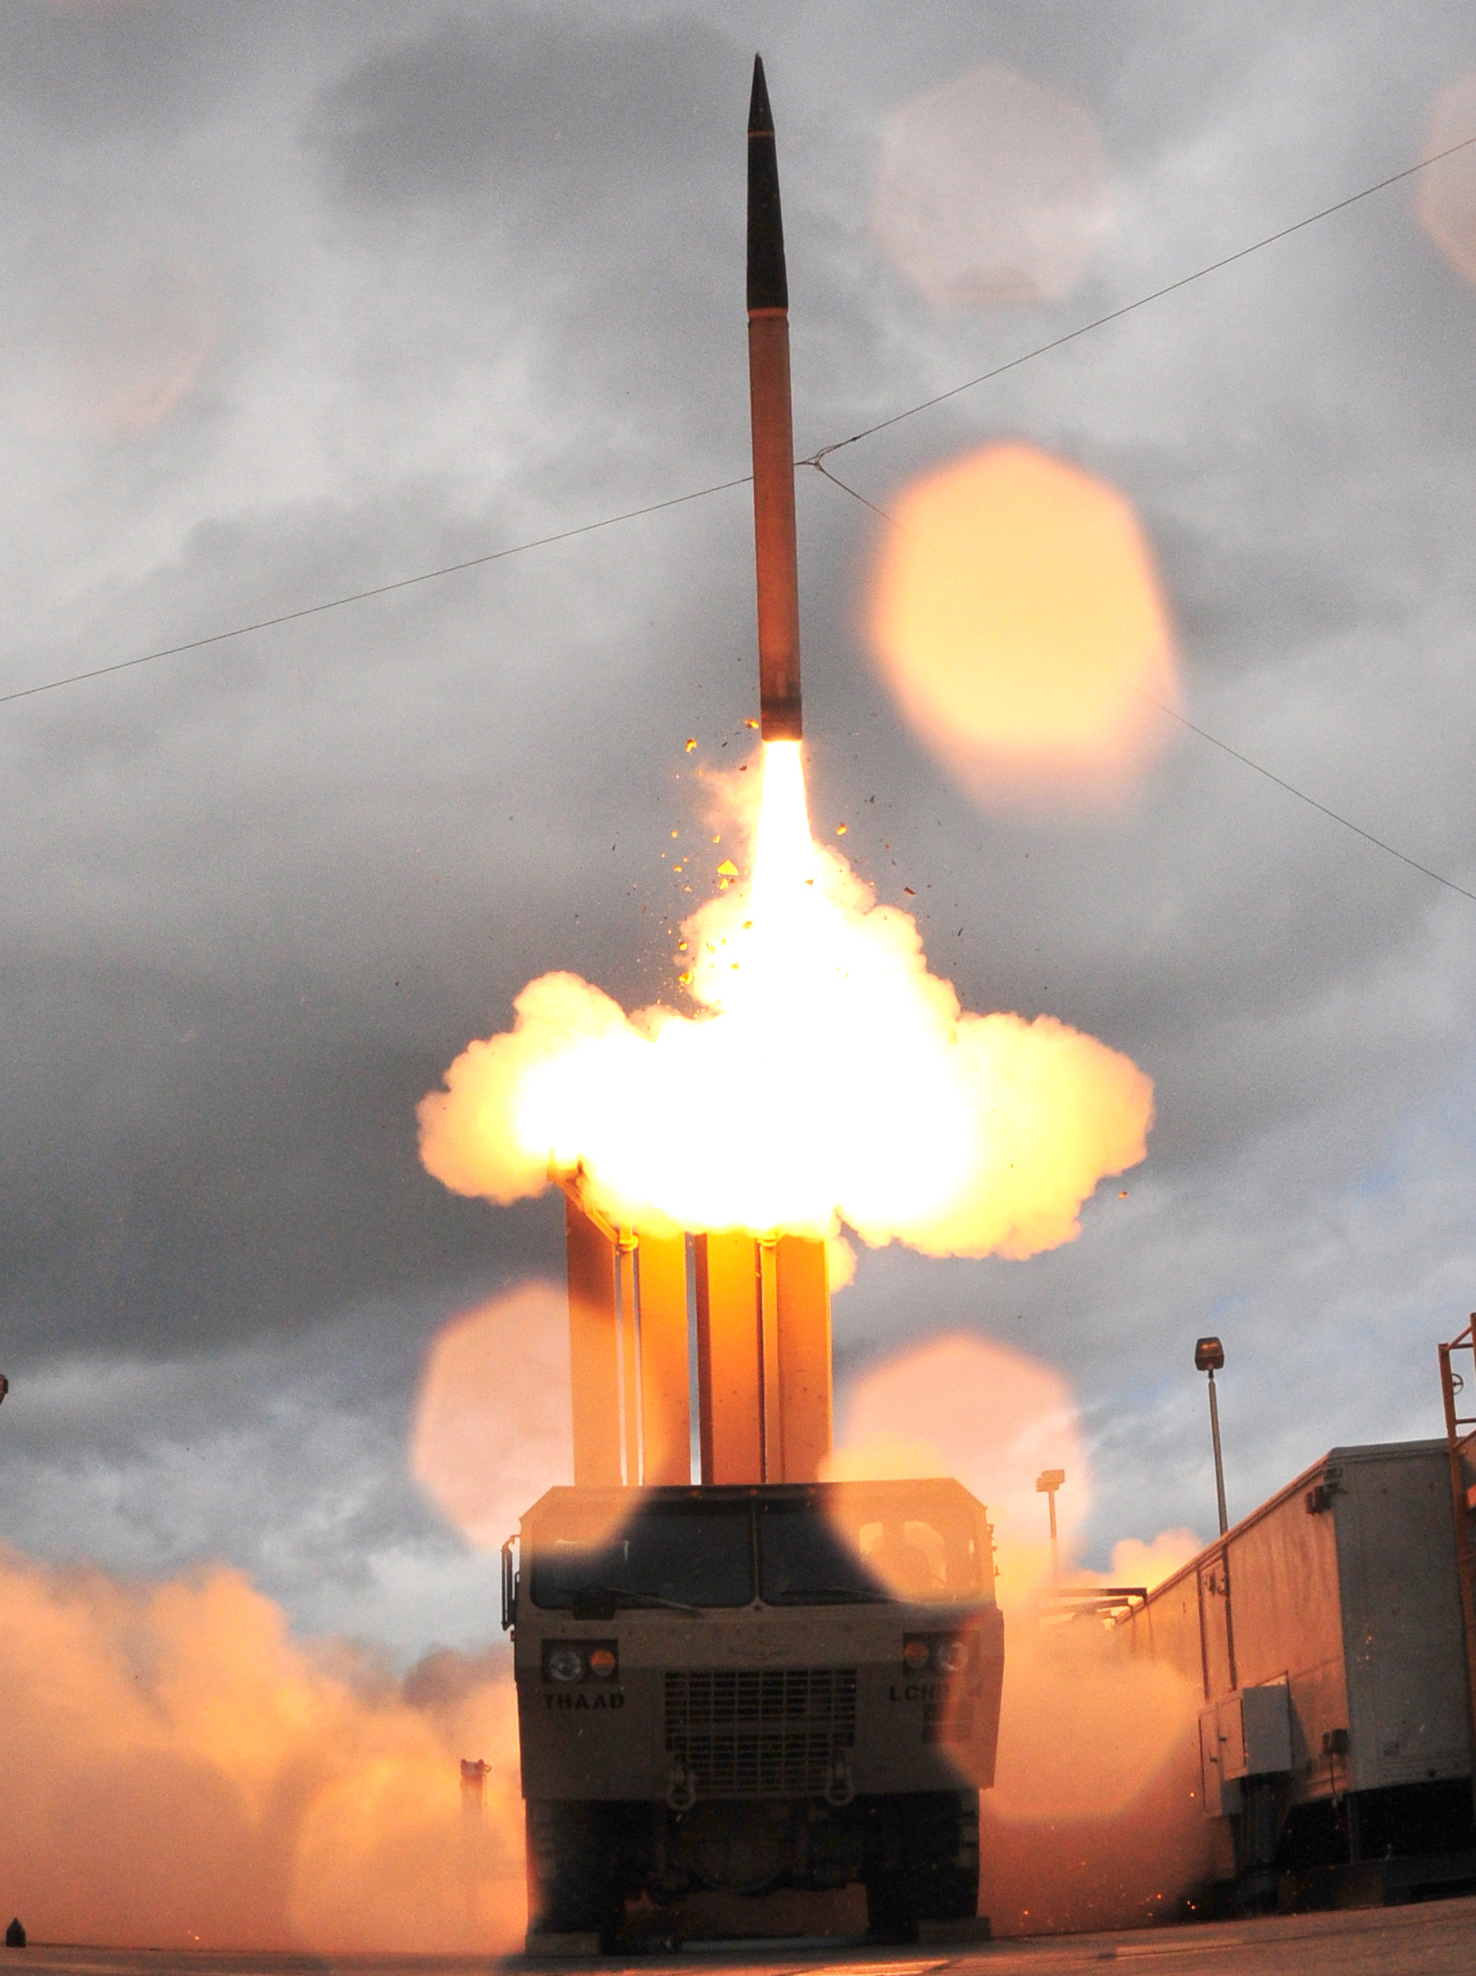 http://upload.wikimedia.org/wikipedia/commons/6/61/Thaad_missile_and_launcher.jpg